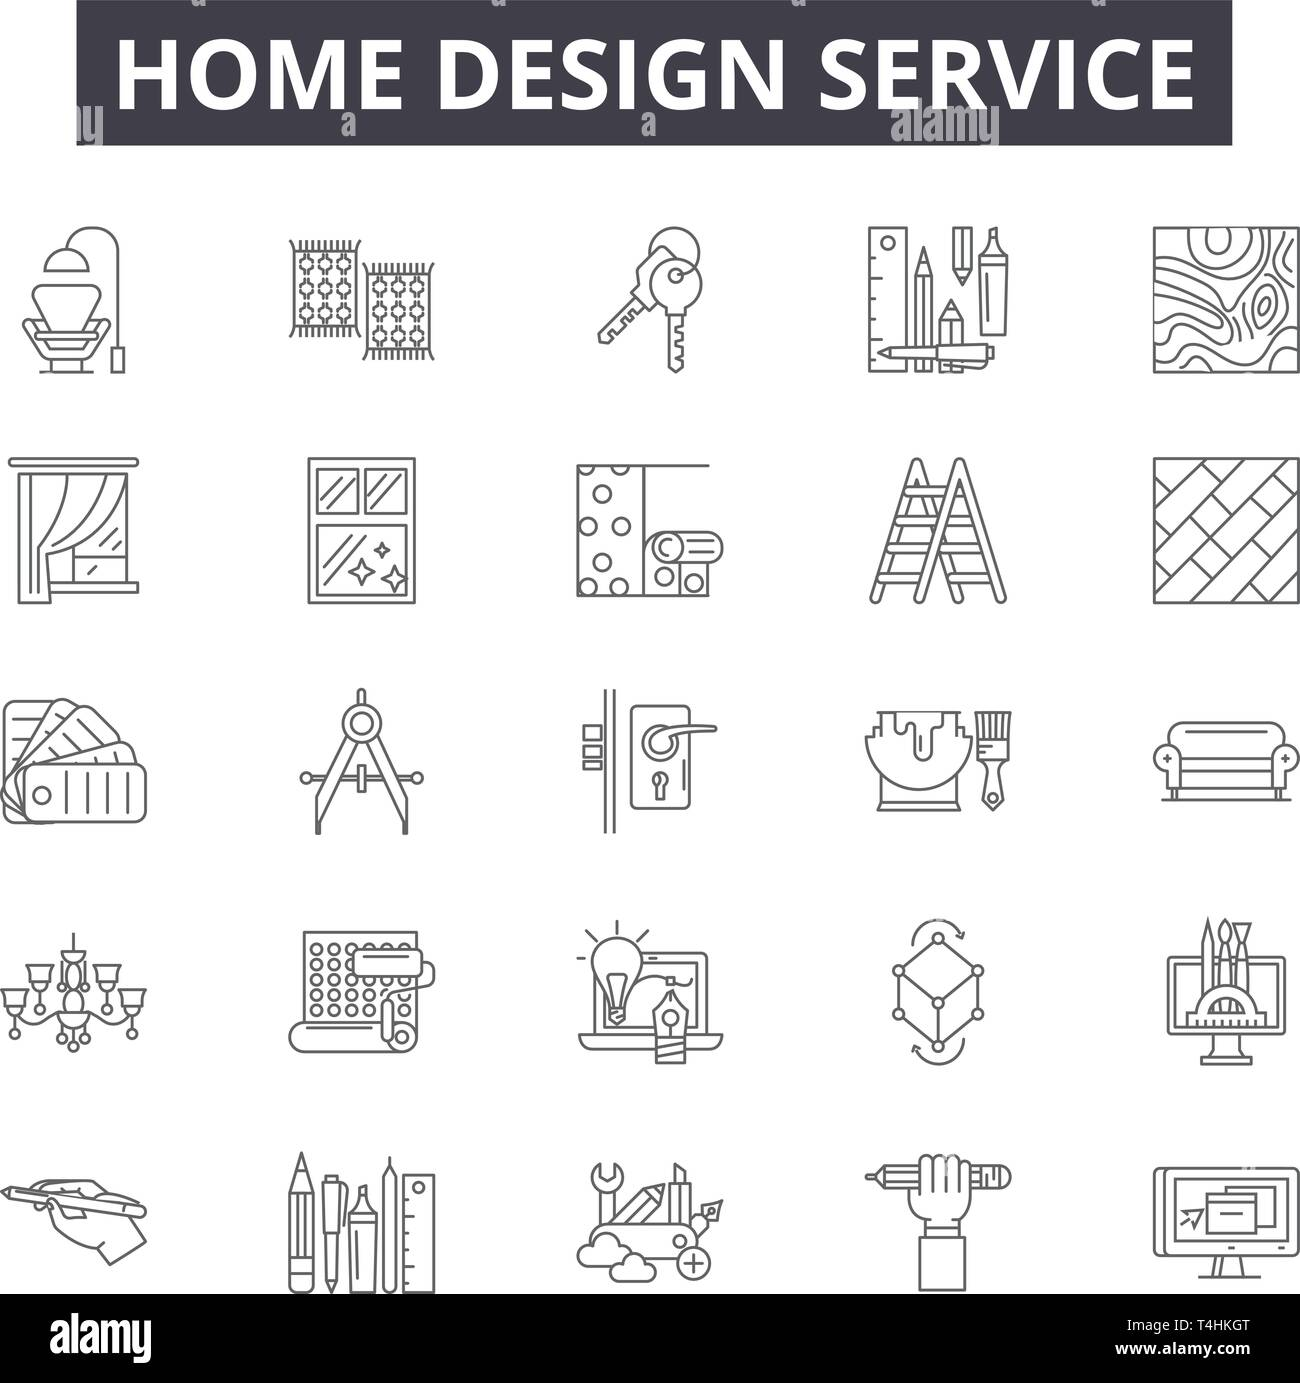 Home Design Service Line Icons Signs Set Vector Home